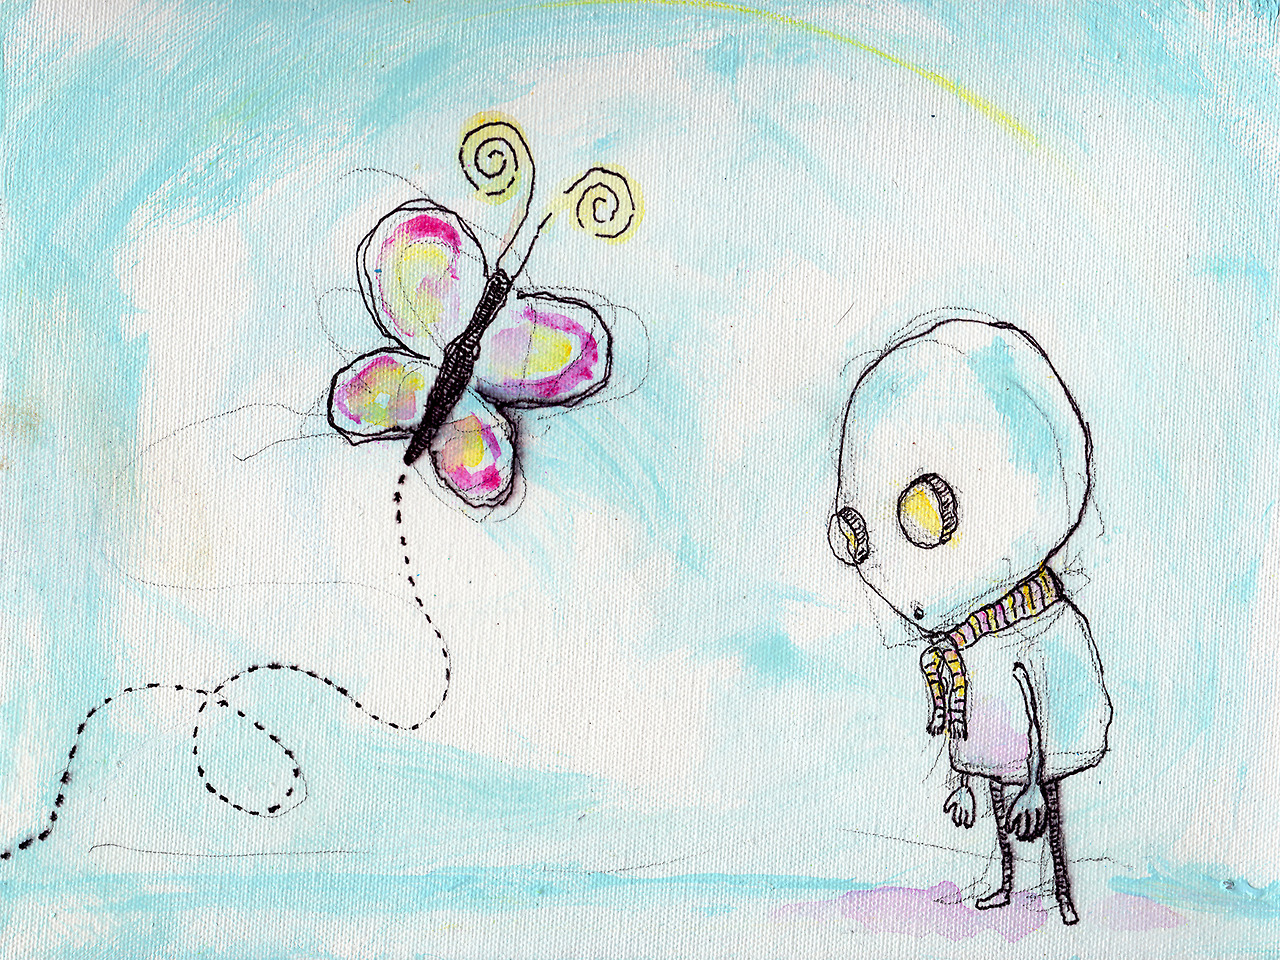 "5/26/13 -  Mervin and the Flutterby .   Some days it's easier just to watch life float past you.   12"" x 9"" Acrylic paint, sharpie, pencil, polyurethane on canvas.   Available to purchase here:  http://taylorwinder.bigcartel.com    Prints available here:  http://society6.com/taylorwinder"